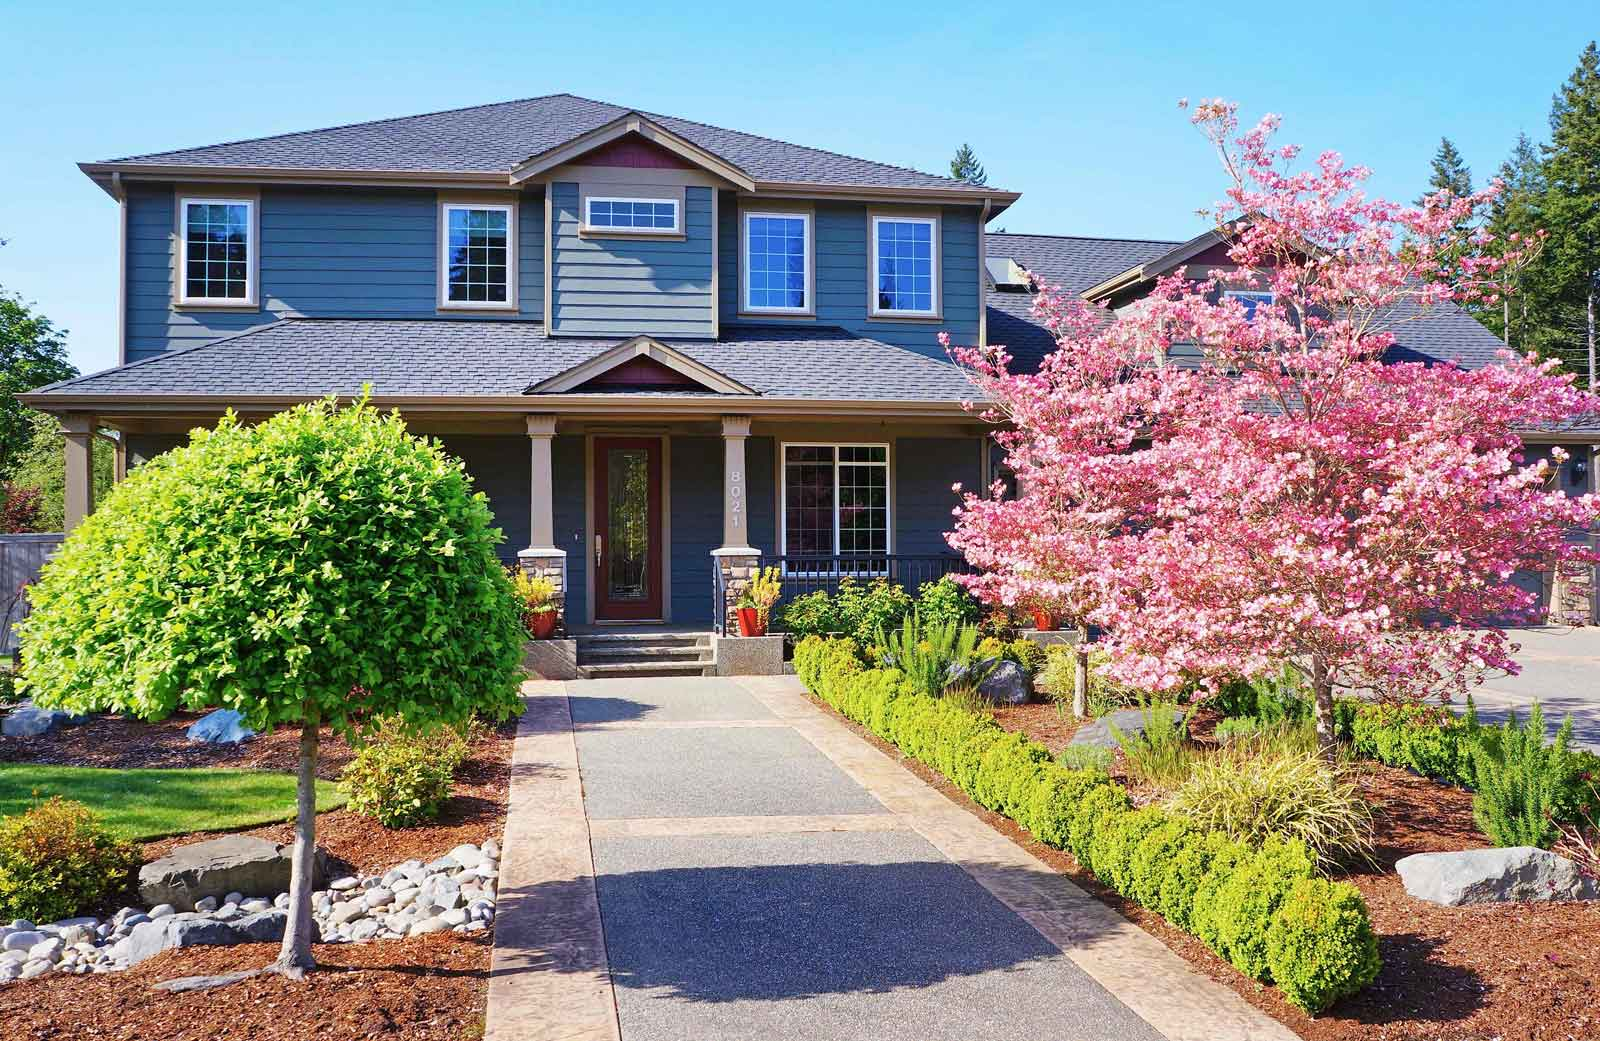 How to Prepare for Spring Property Season